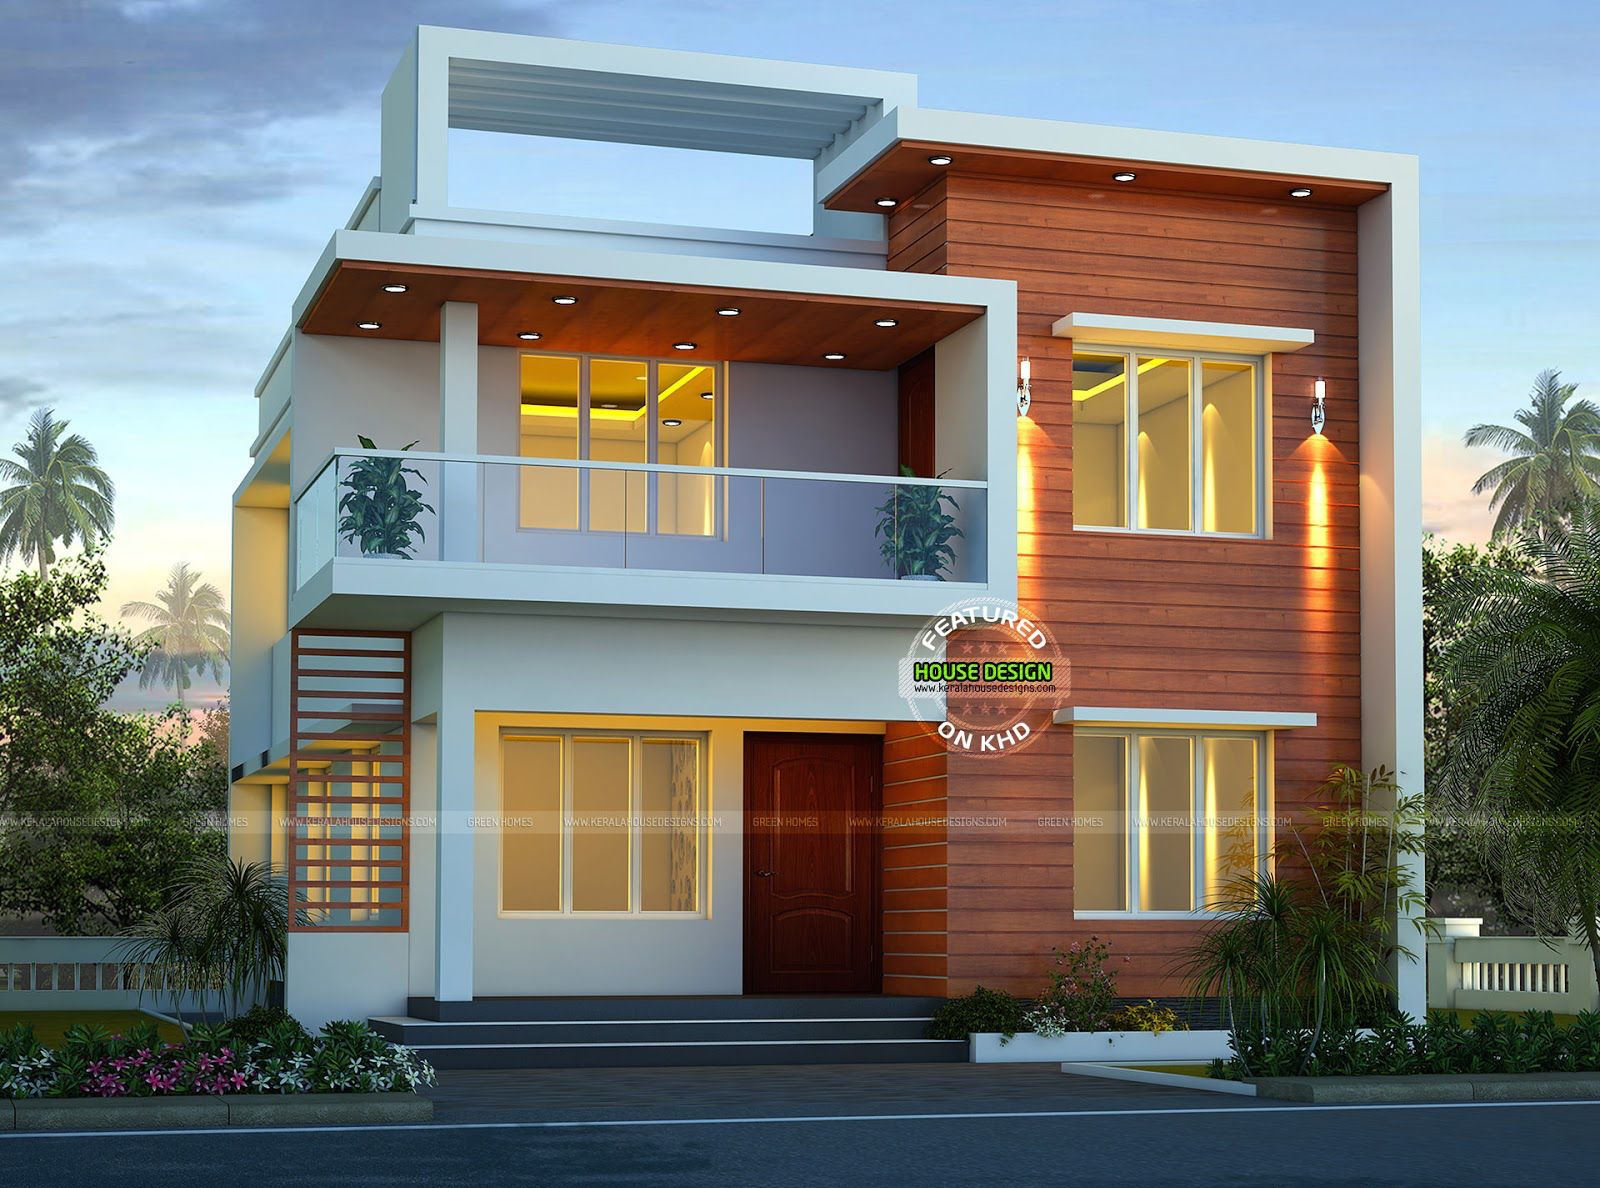 House design double story - This Small Modern Double Storey Home Has Total Area Of 1900 Square Feet Square Meter Square Yards With 4 Bedrooms In Beautiful Modern Look